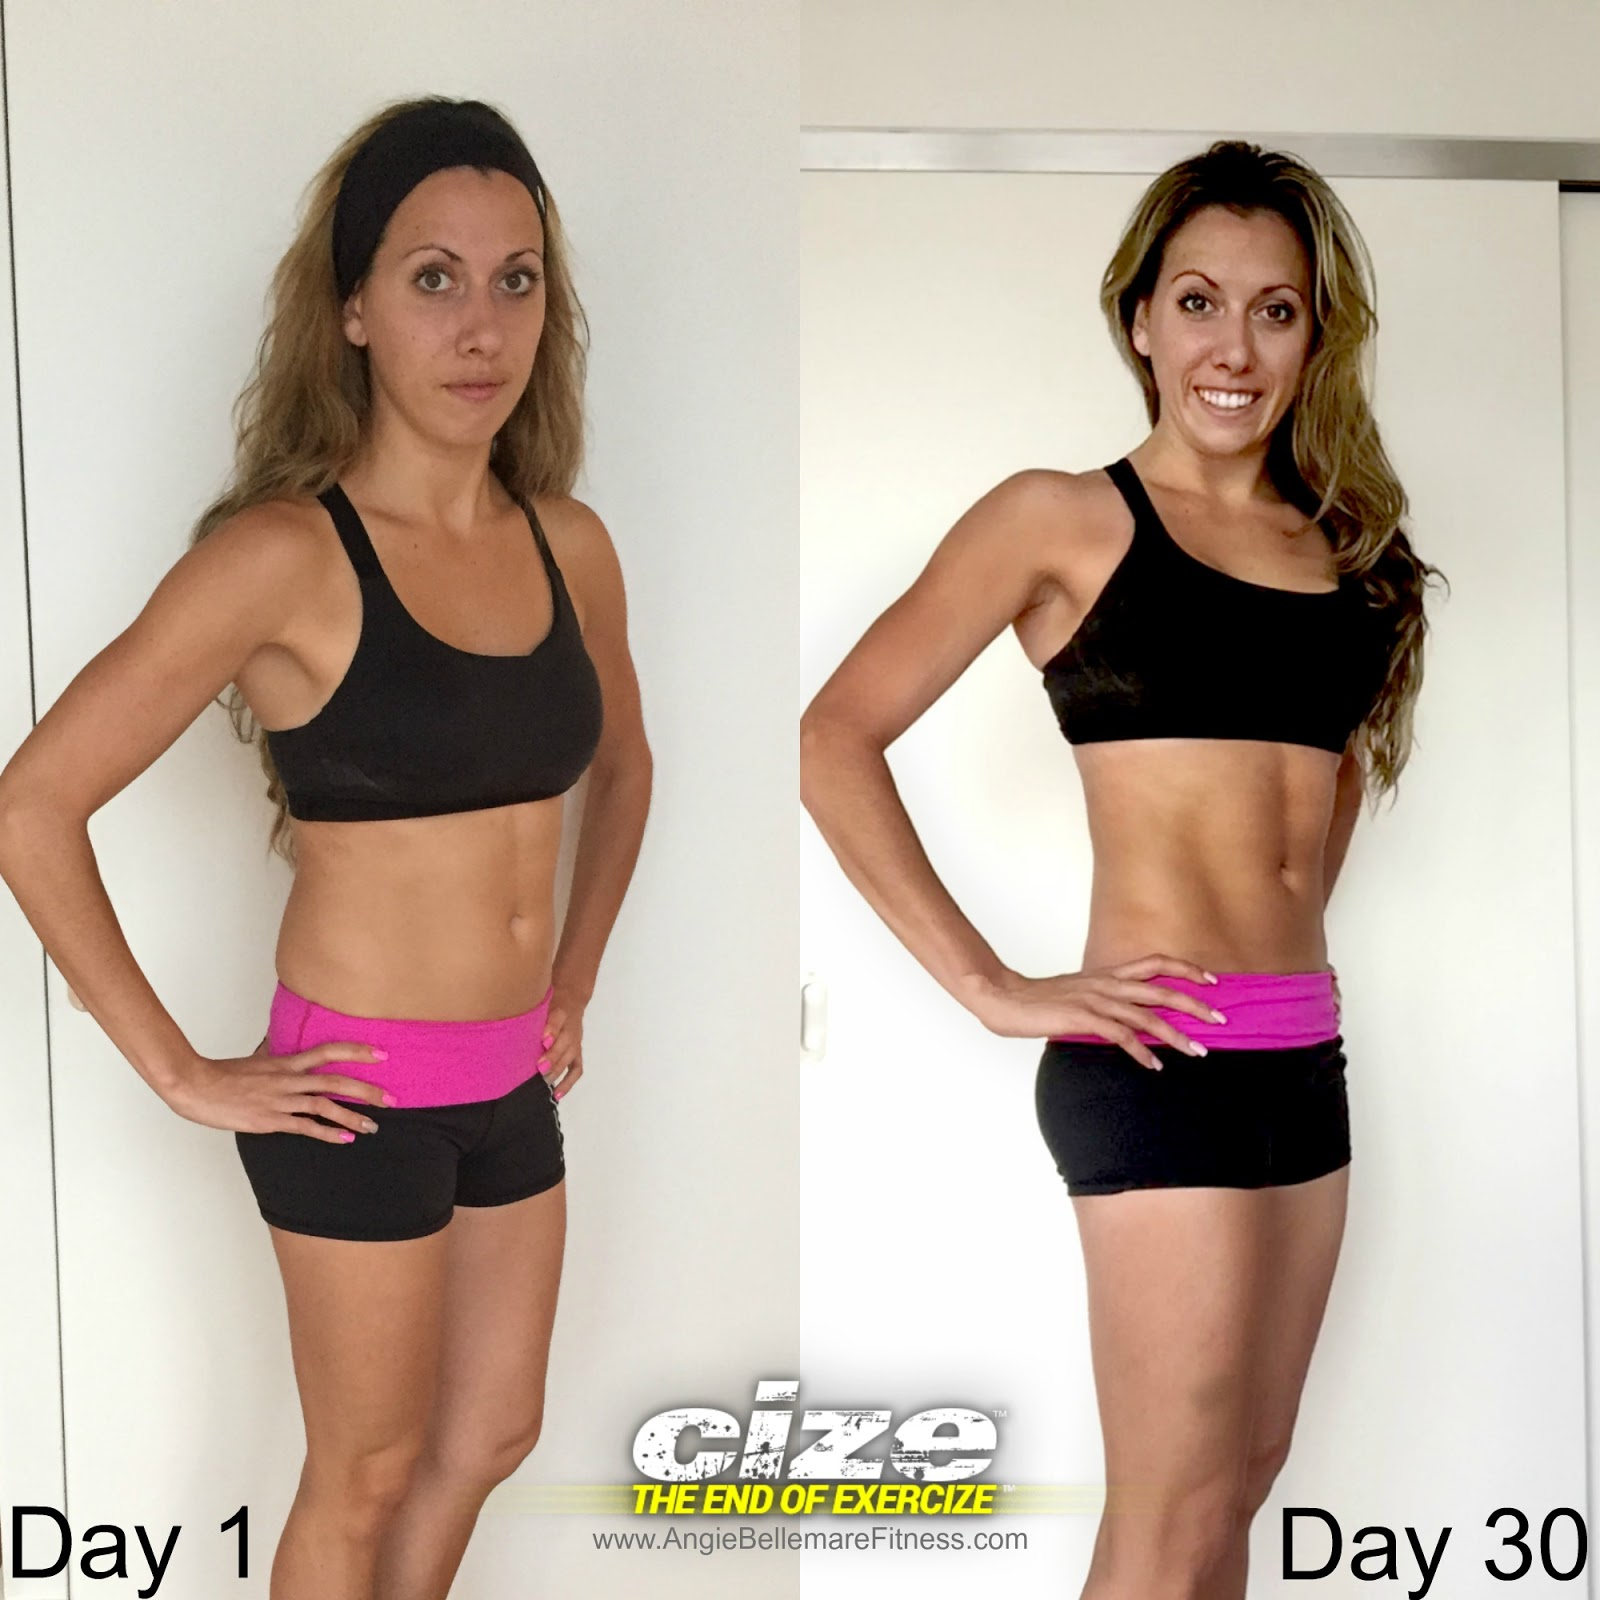 Angie Bellemare Fitness Cize It Up